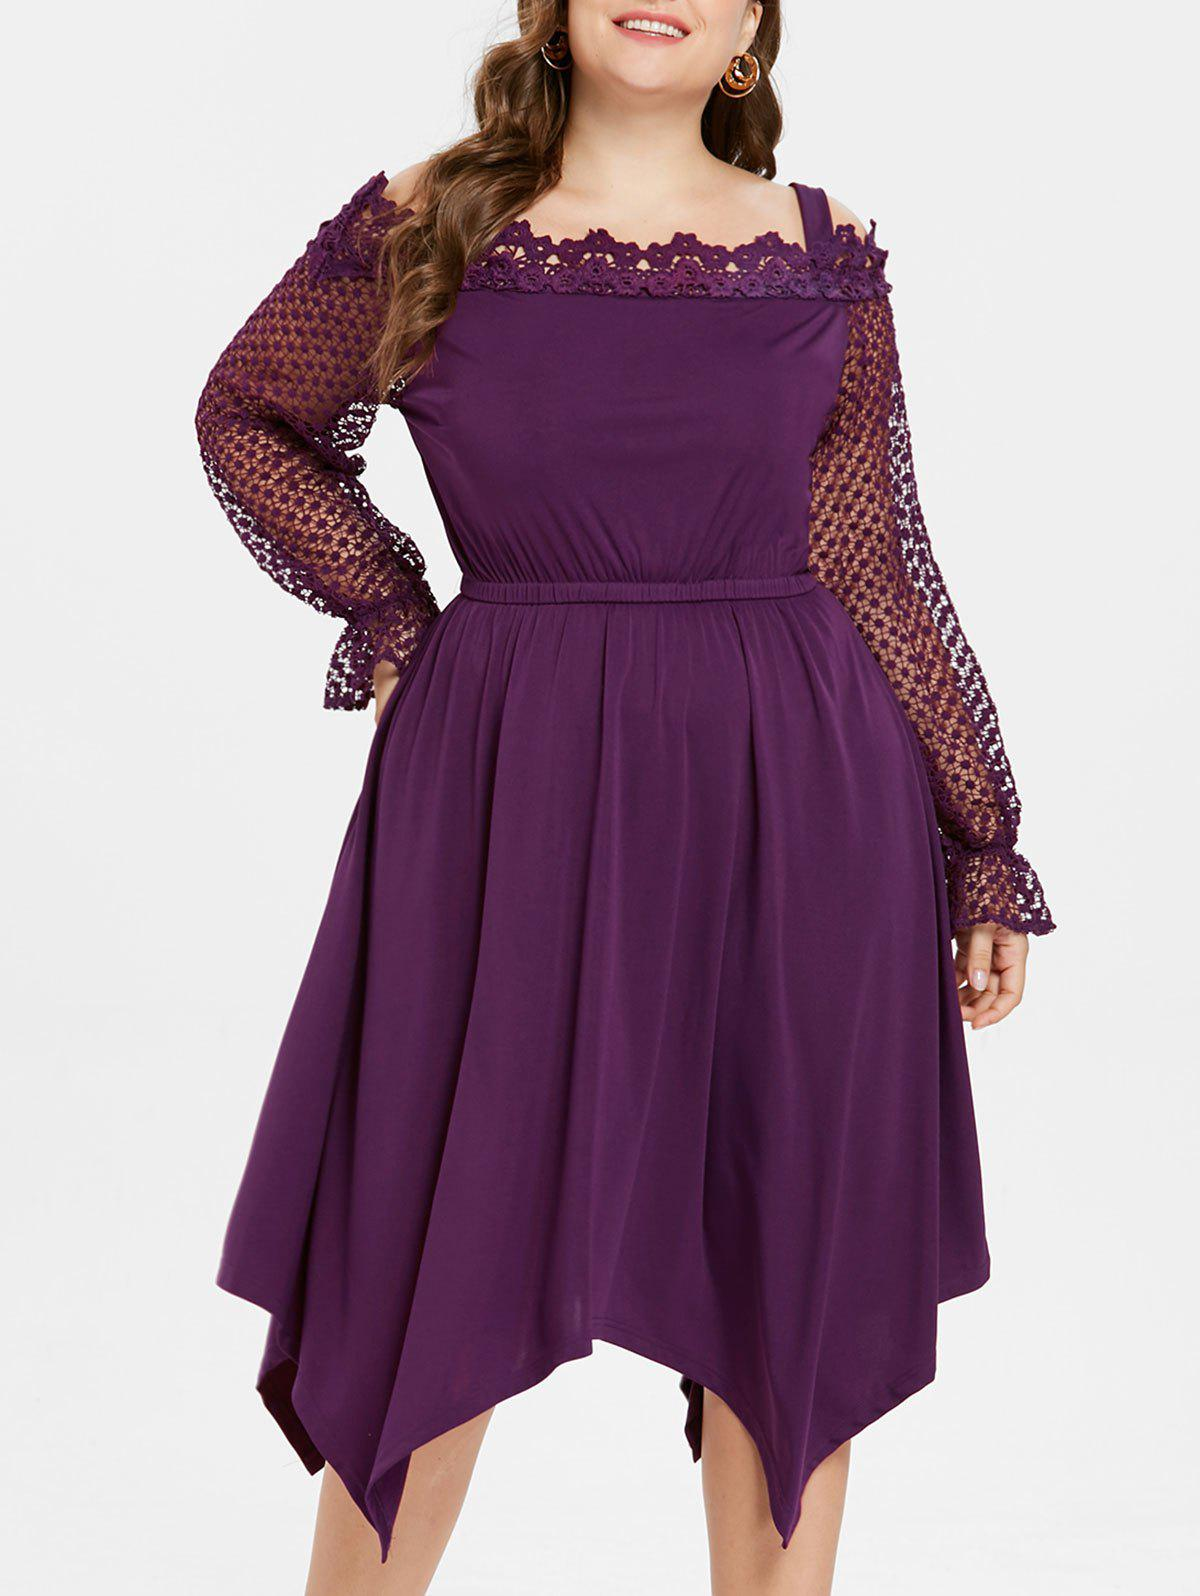 Elastic Waist Plus Size Crochet Lace Knee Length Dress - PURPLE 1X